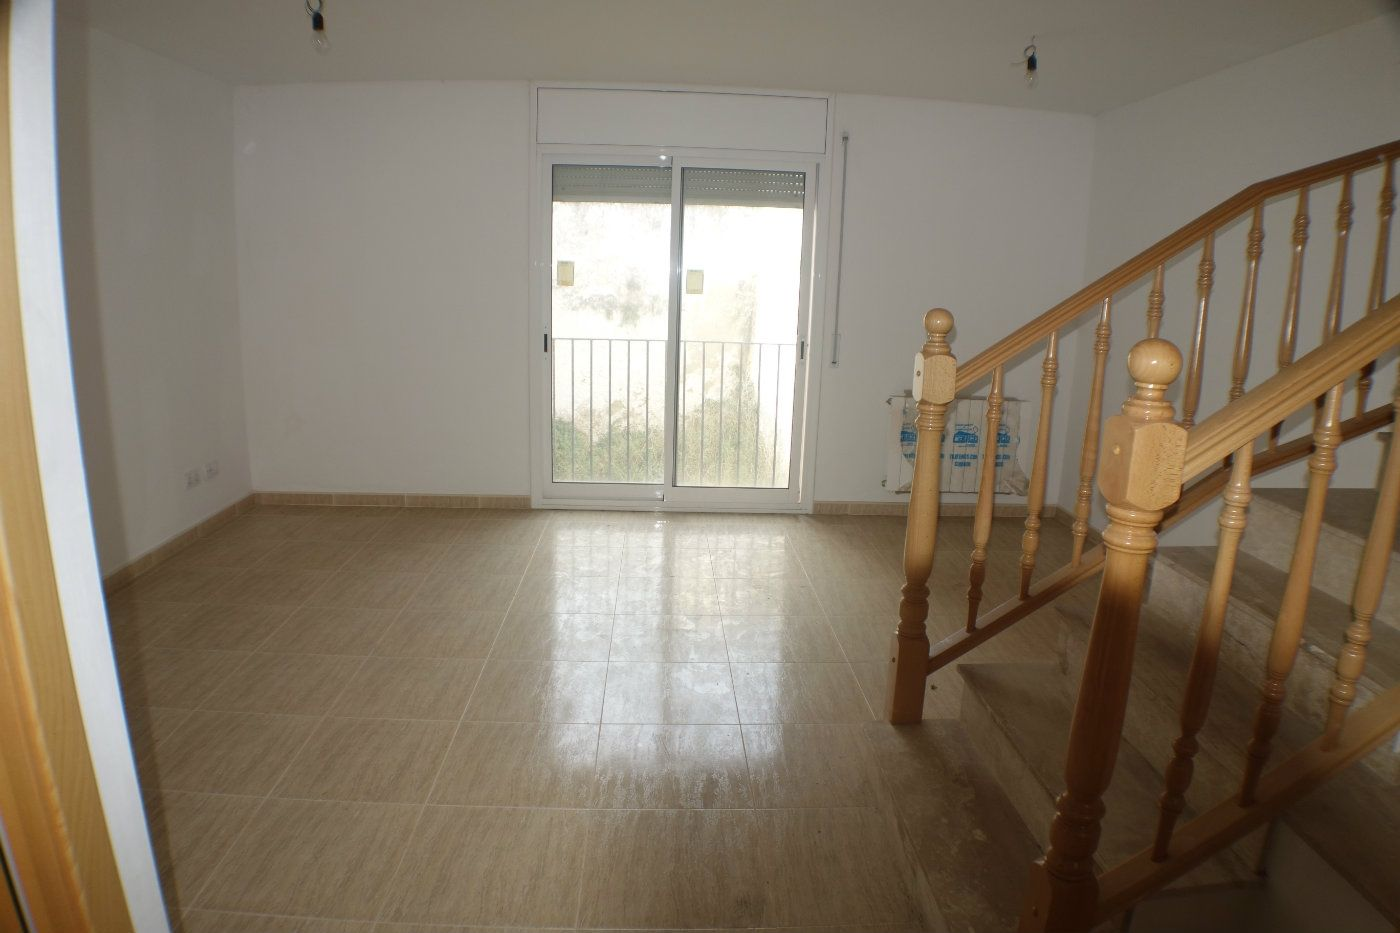 Rent Triplex in Centre. Triplex cerca de la playa